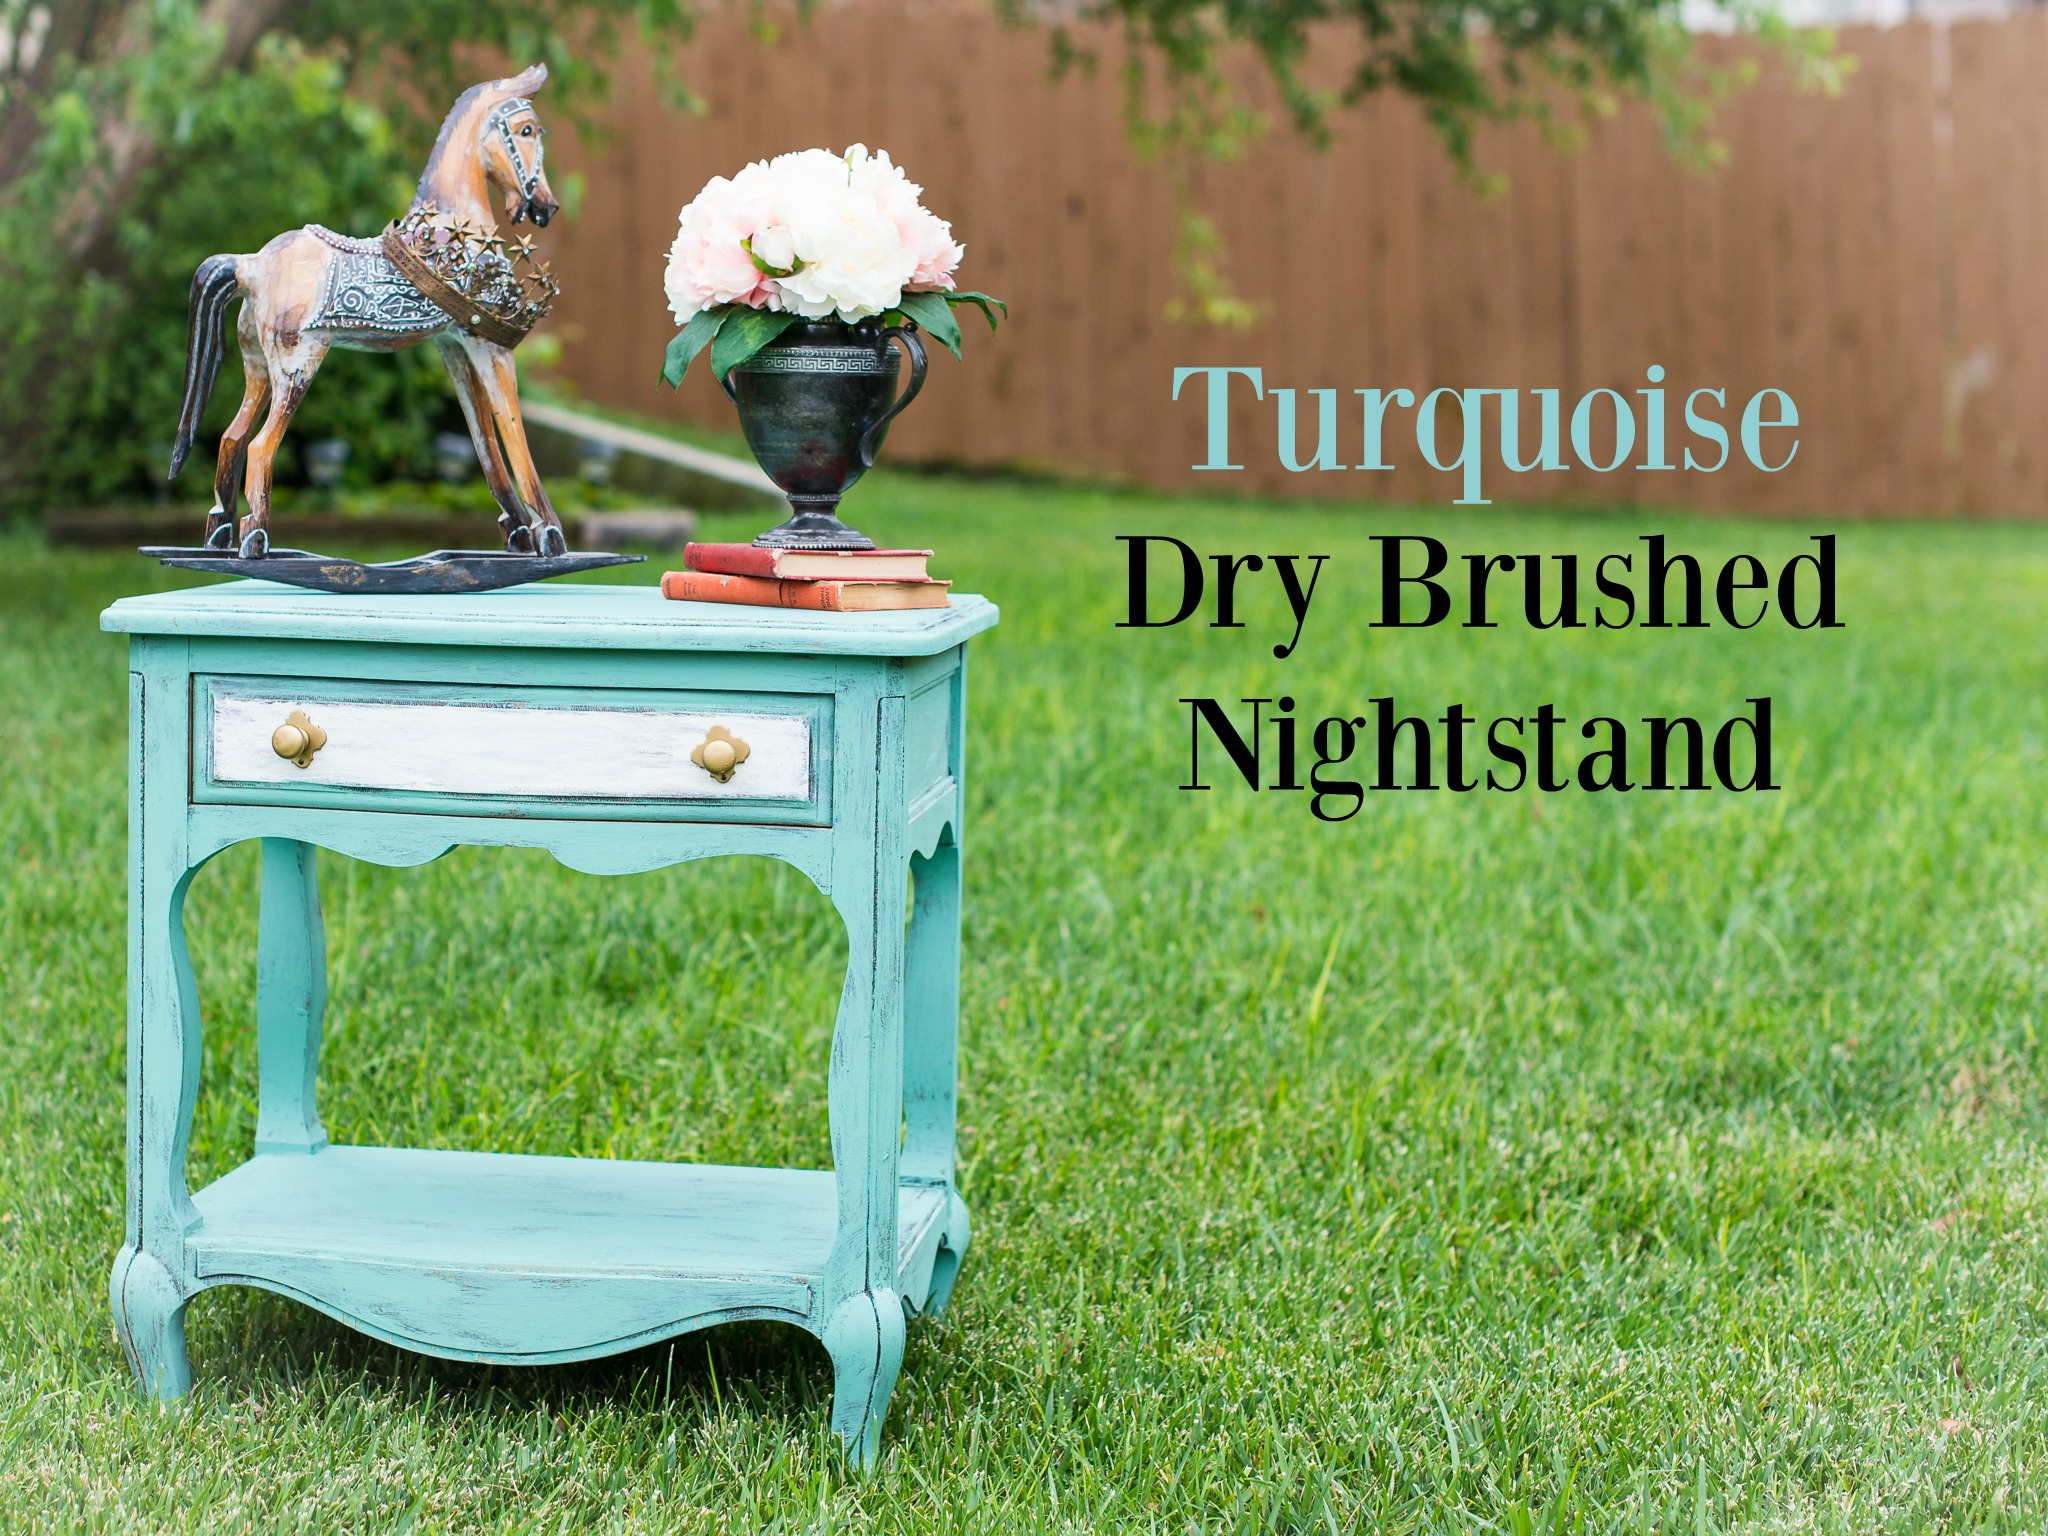 Turquoise Dry Brushed Nightstand